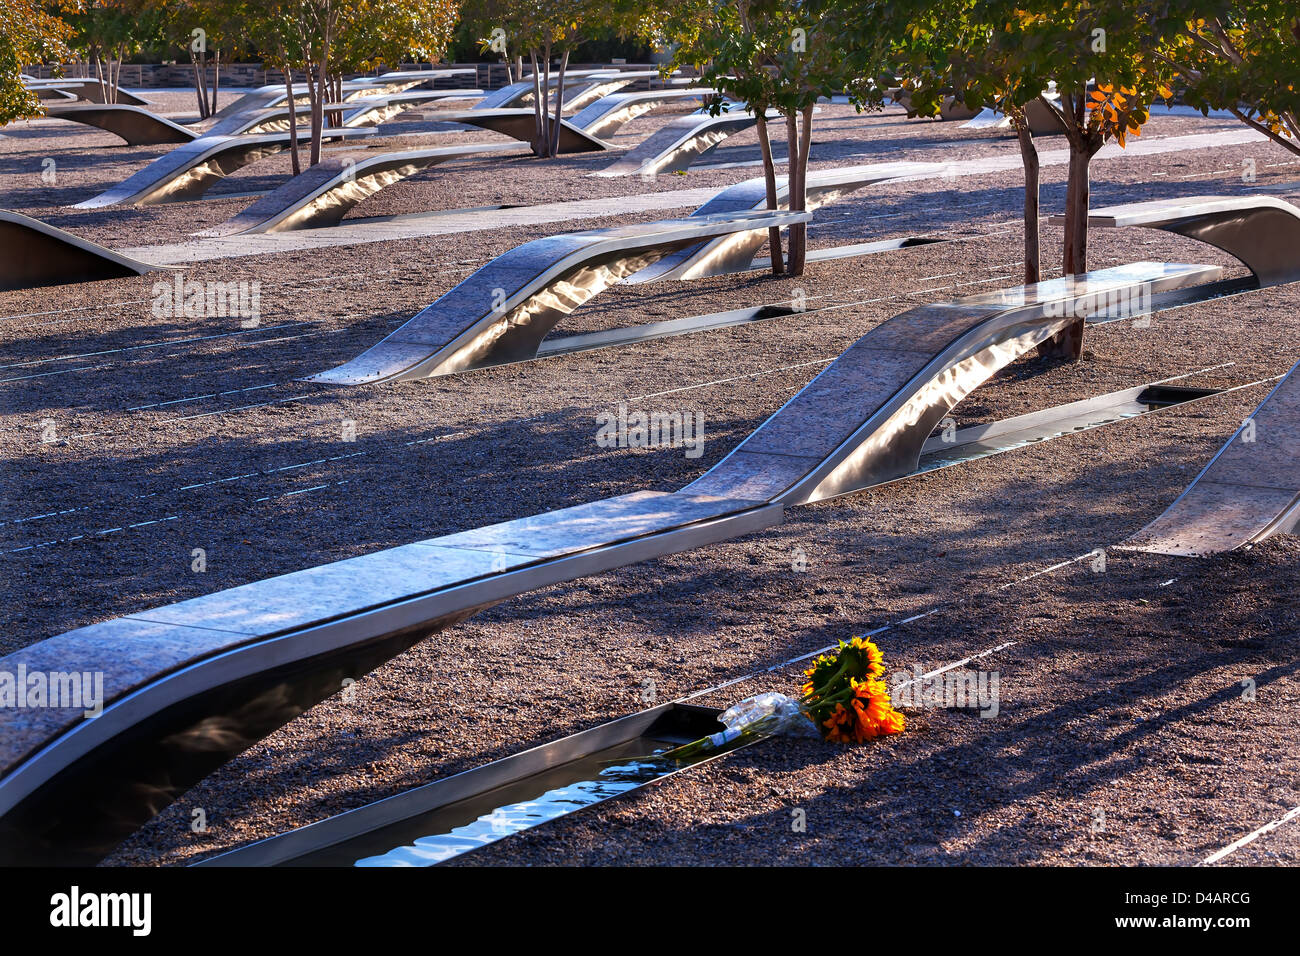 911 Memorial To Victims Of Pentagon Attack In Arlington Virginia The Washington DC